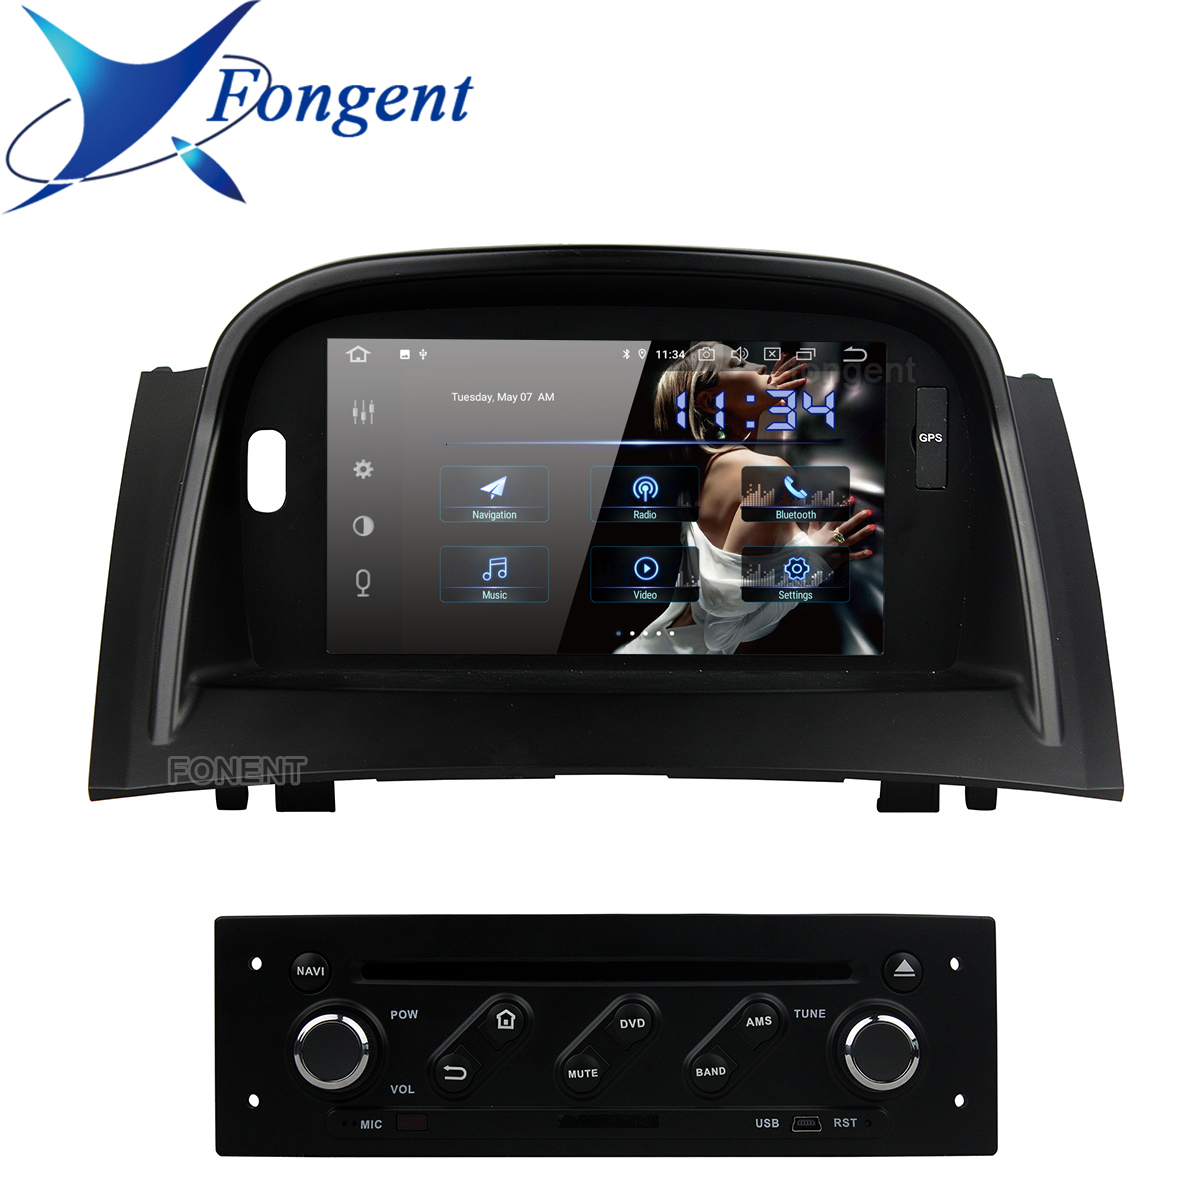 Car <font><b>Dvd</b></font> Multimedia Player For Renault <font><b>Megane</b></font> Ii <font><b>2</b></font> 2004 2005 2006 2007 2008 2009 Vehicle <font><b>Gps</b></font> Glonass Radio Stereo DSP Android PC image